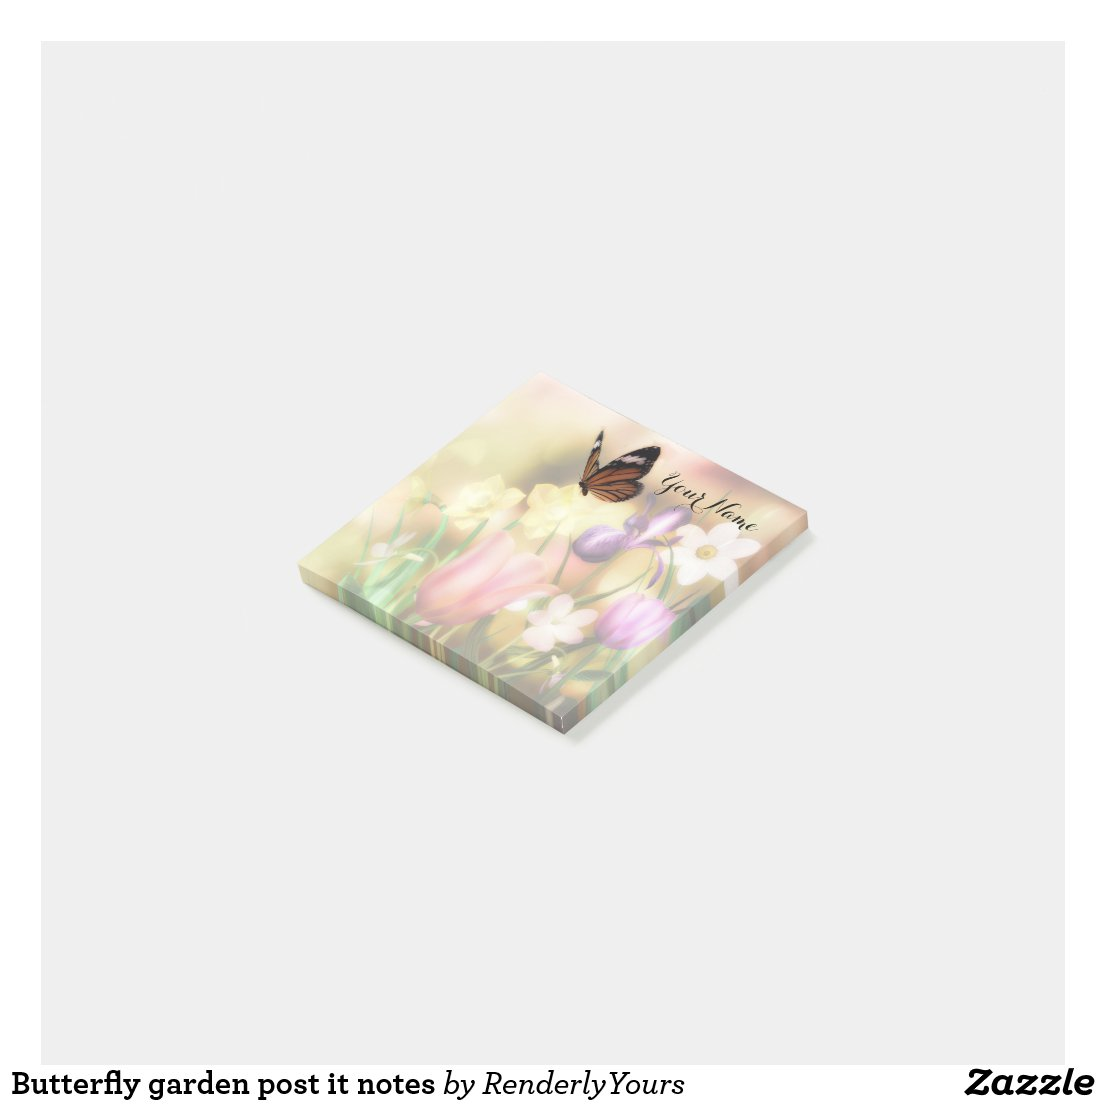 Butterfly garden post it notes